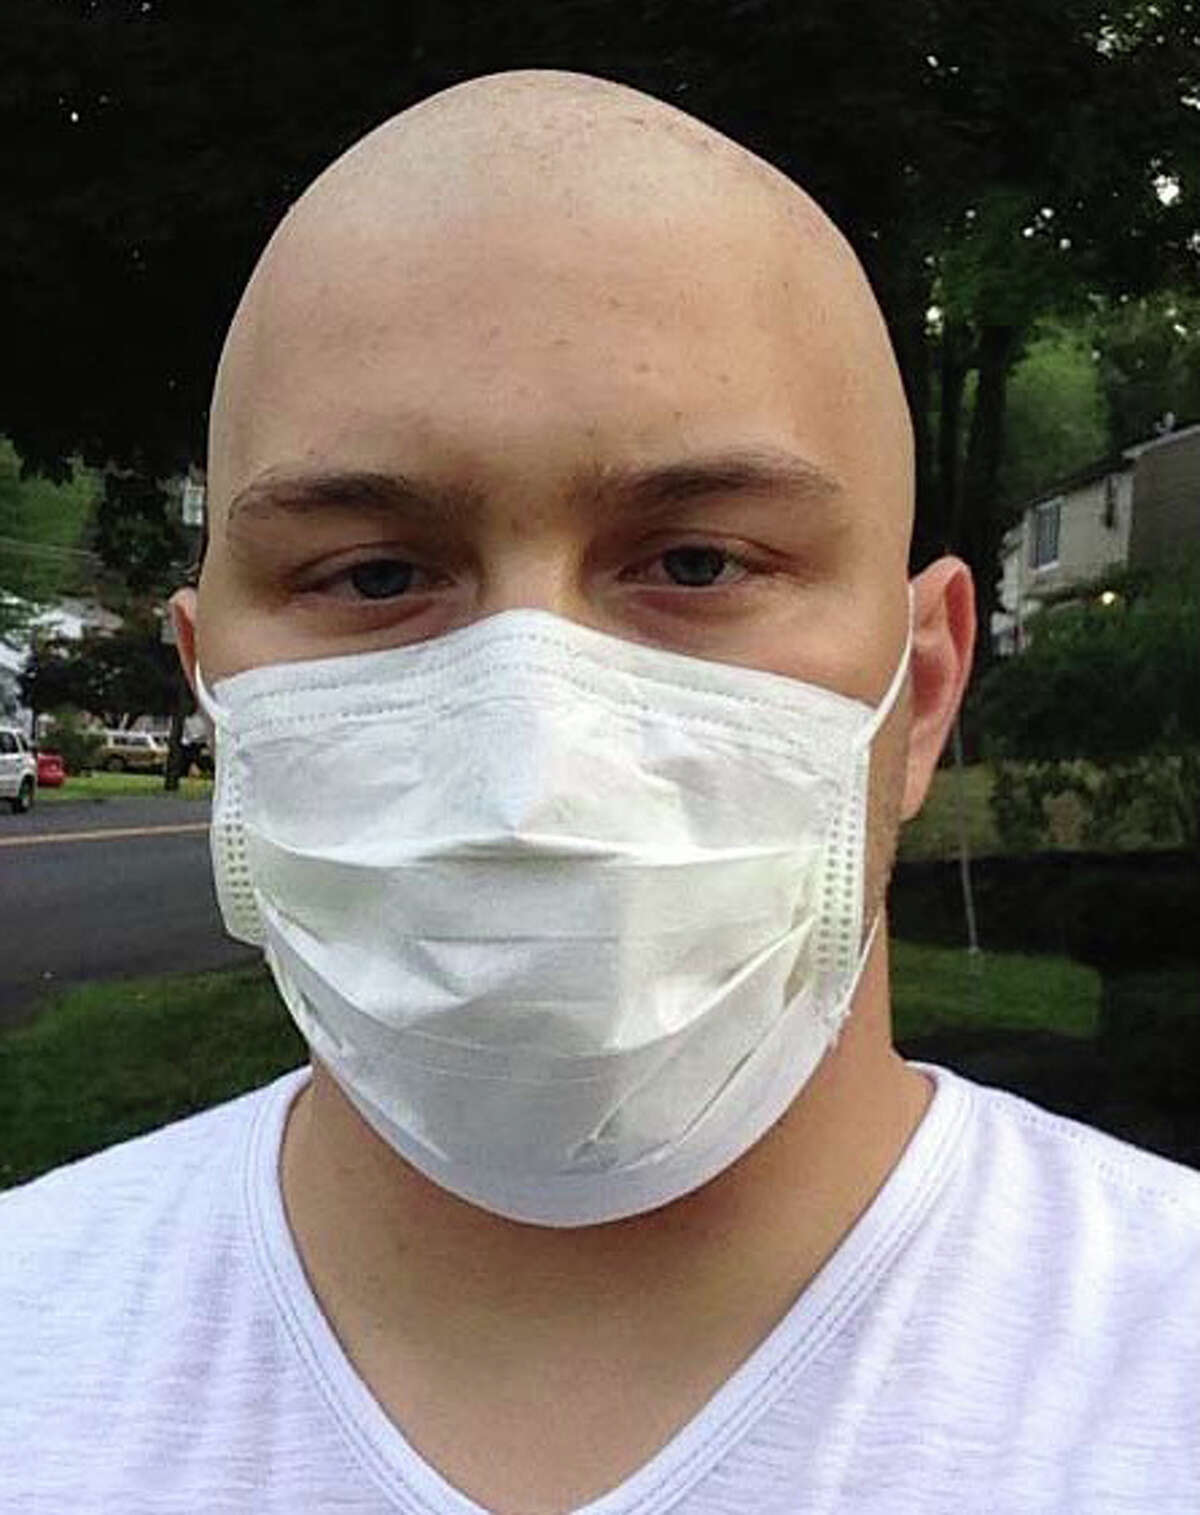 A classic car and bike show fundraiser will be on Sunday, Oct. 20, to help Joseph LaDuca, 24, a volunteer firefighter in Danbury who is battling brain cancer. LaDuca, shown here, has had to put college and work on hold while trying to regain his health. The five-hour event will be outside Nico's Pizza & Pasta at 175 Main St. in Danbury.